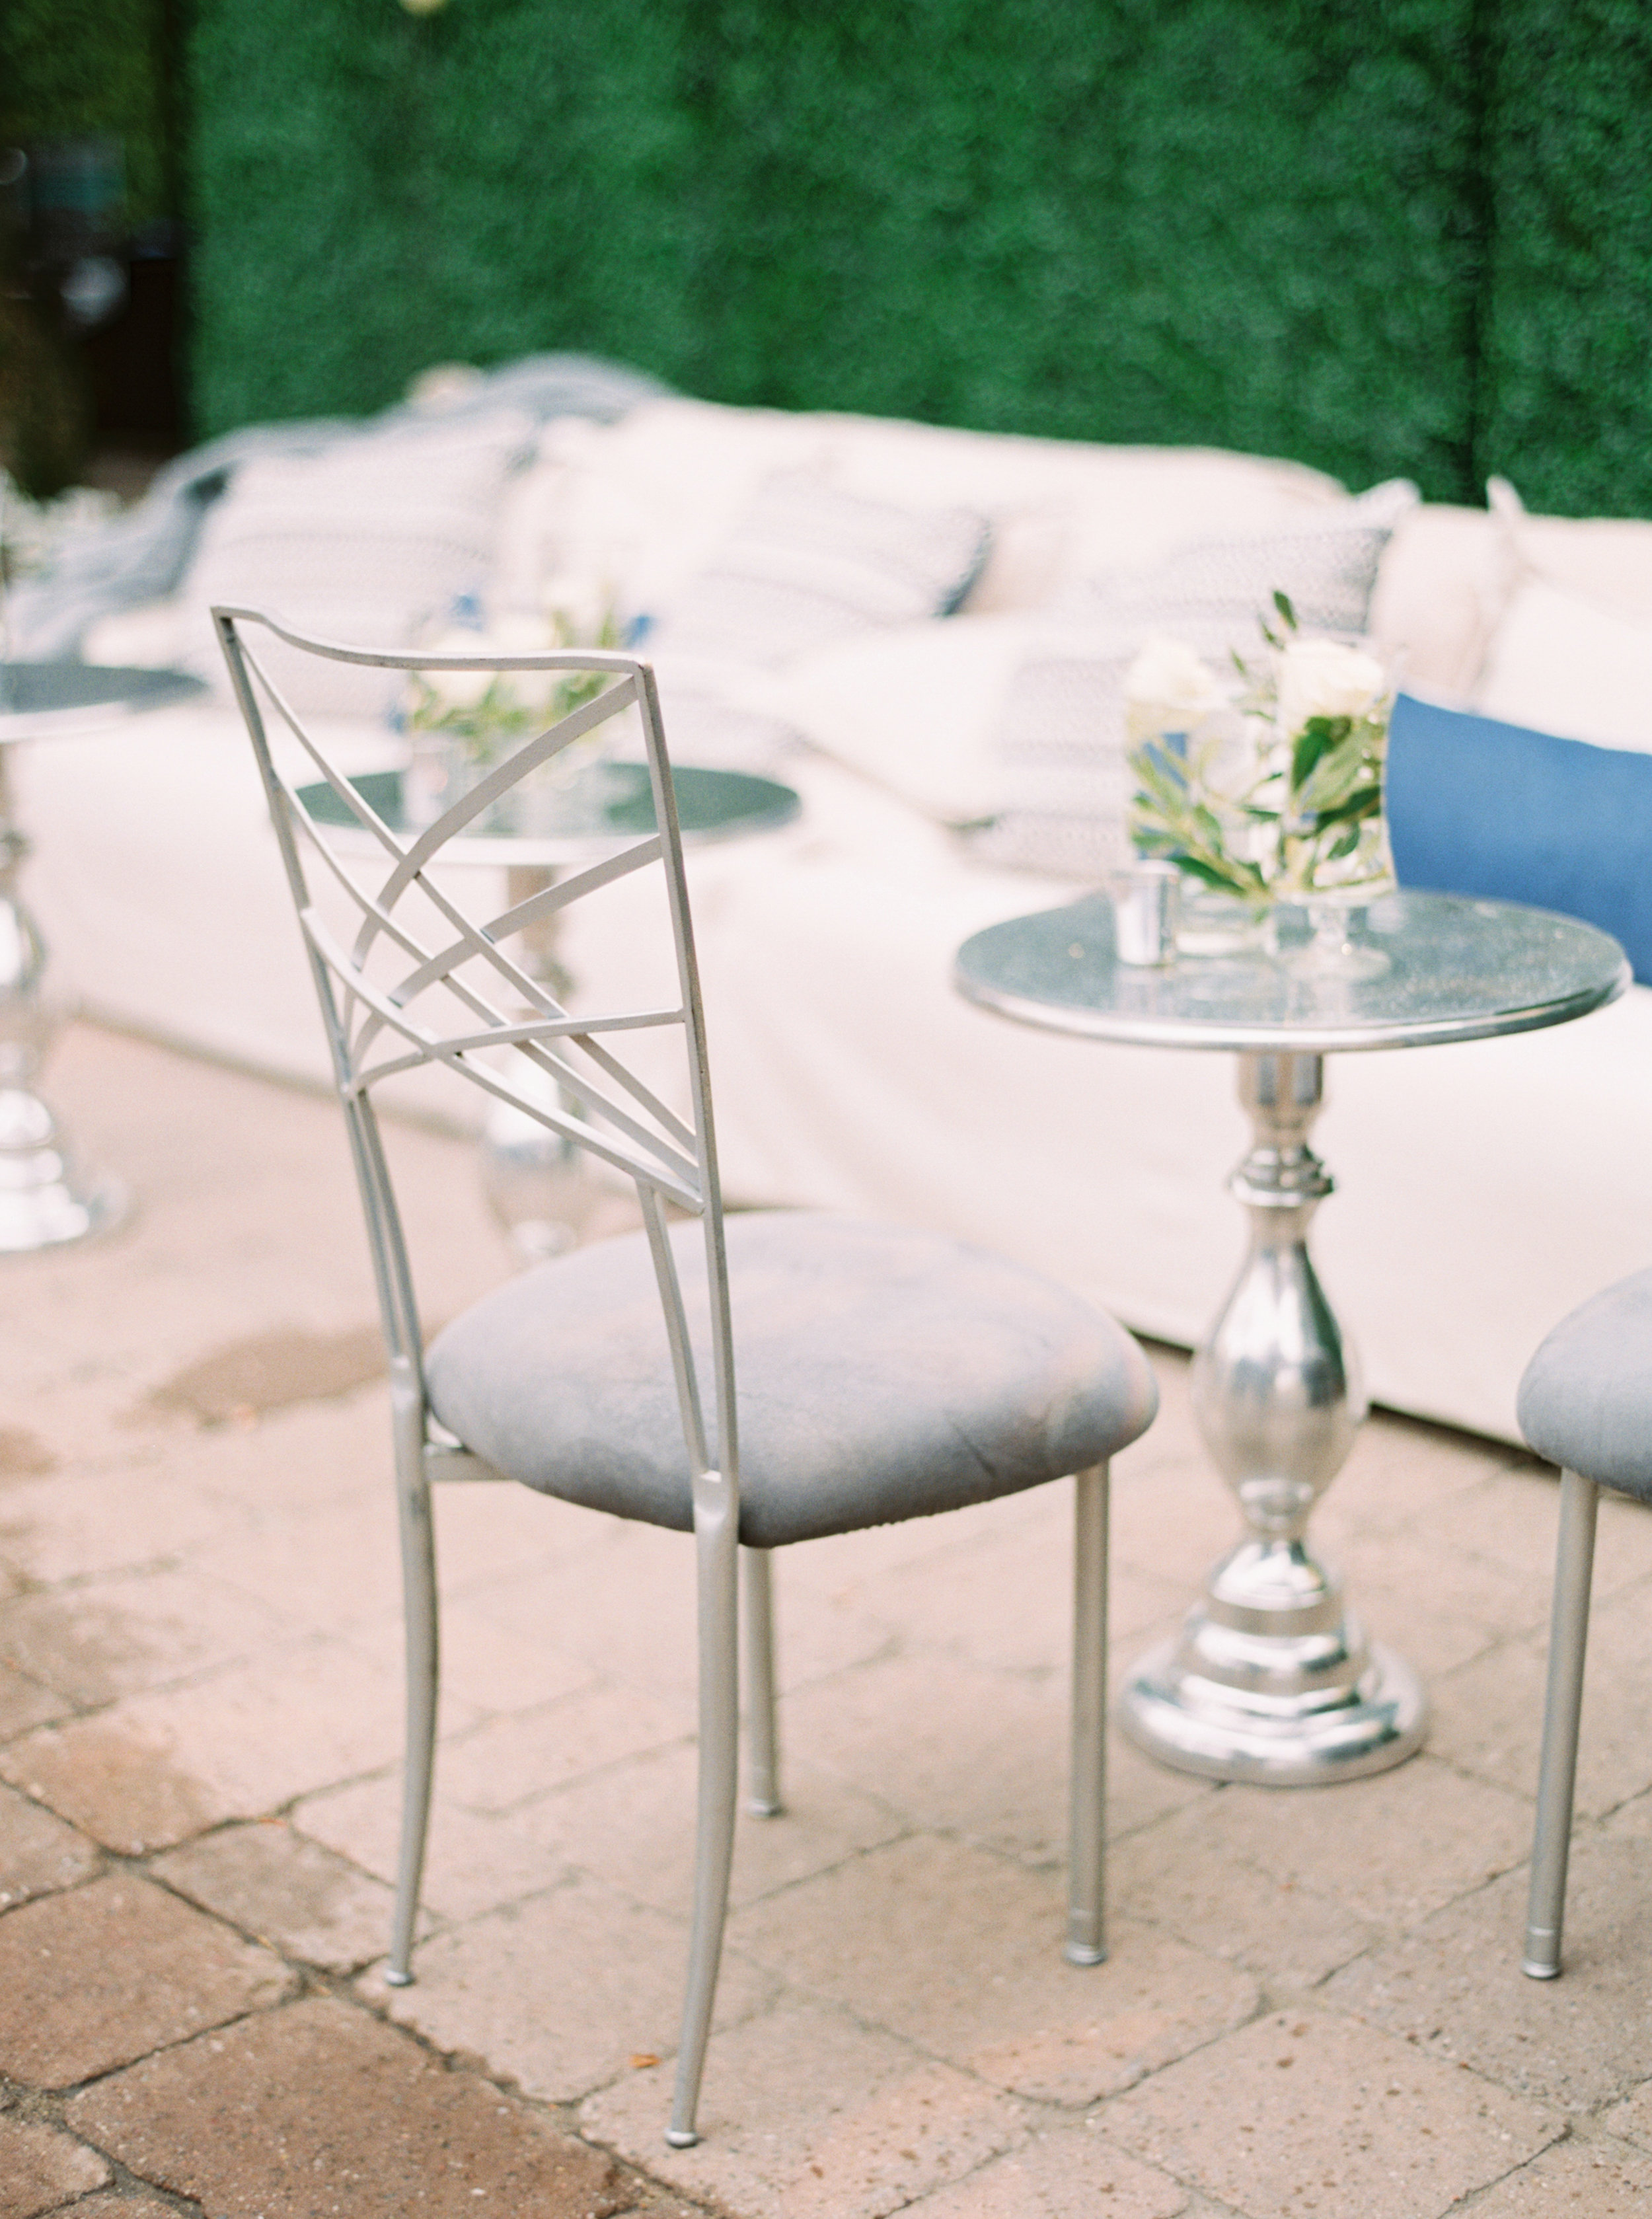 35 cocktail hour cocktail seating soft seating couch cocktail hour chameleon silver chair simple wedding centerpiece Life Design Events photos by Melissa Jill Photography.jpg